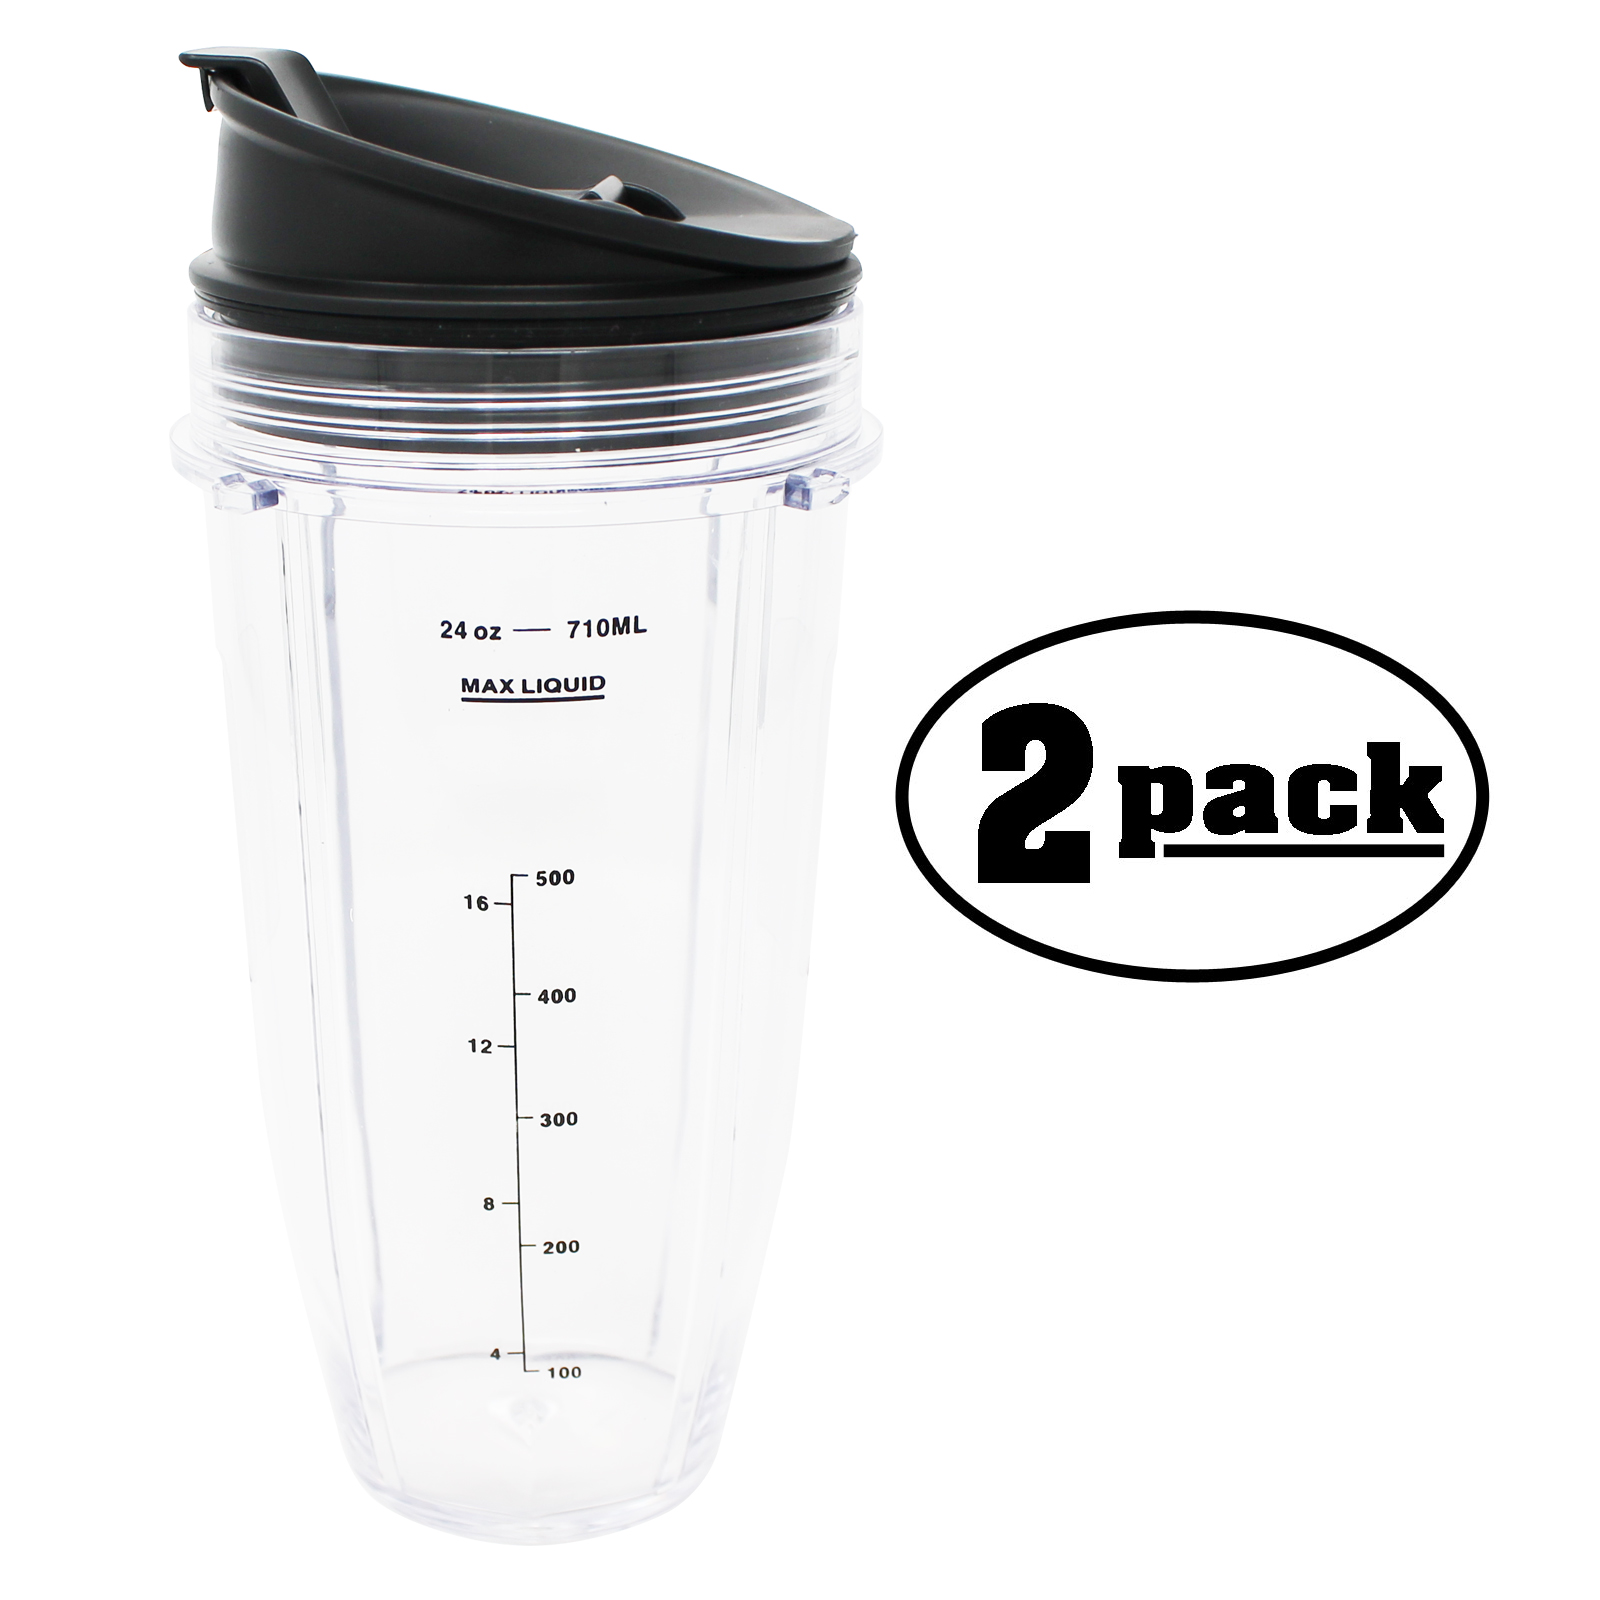 2-Pack Replacement 24 oz Nutri Ninja Cup 103KCP for BL490 Nutri Ninja Blender - image 3 de 3